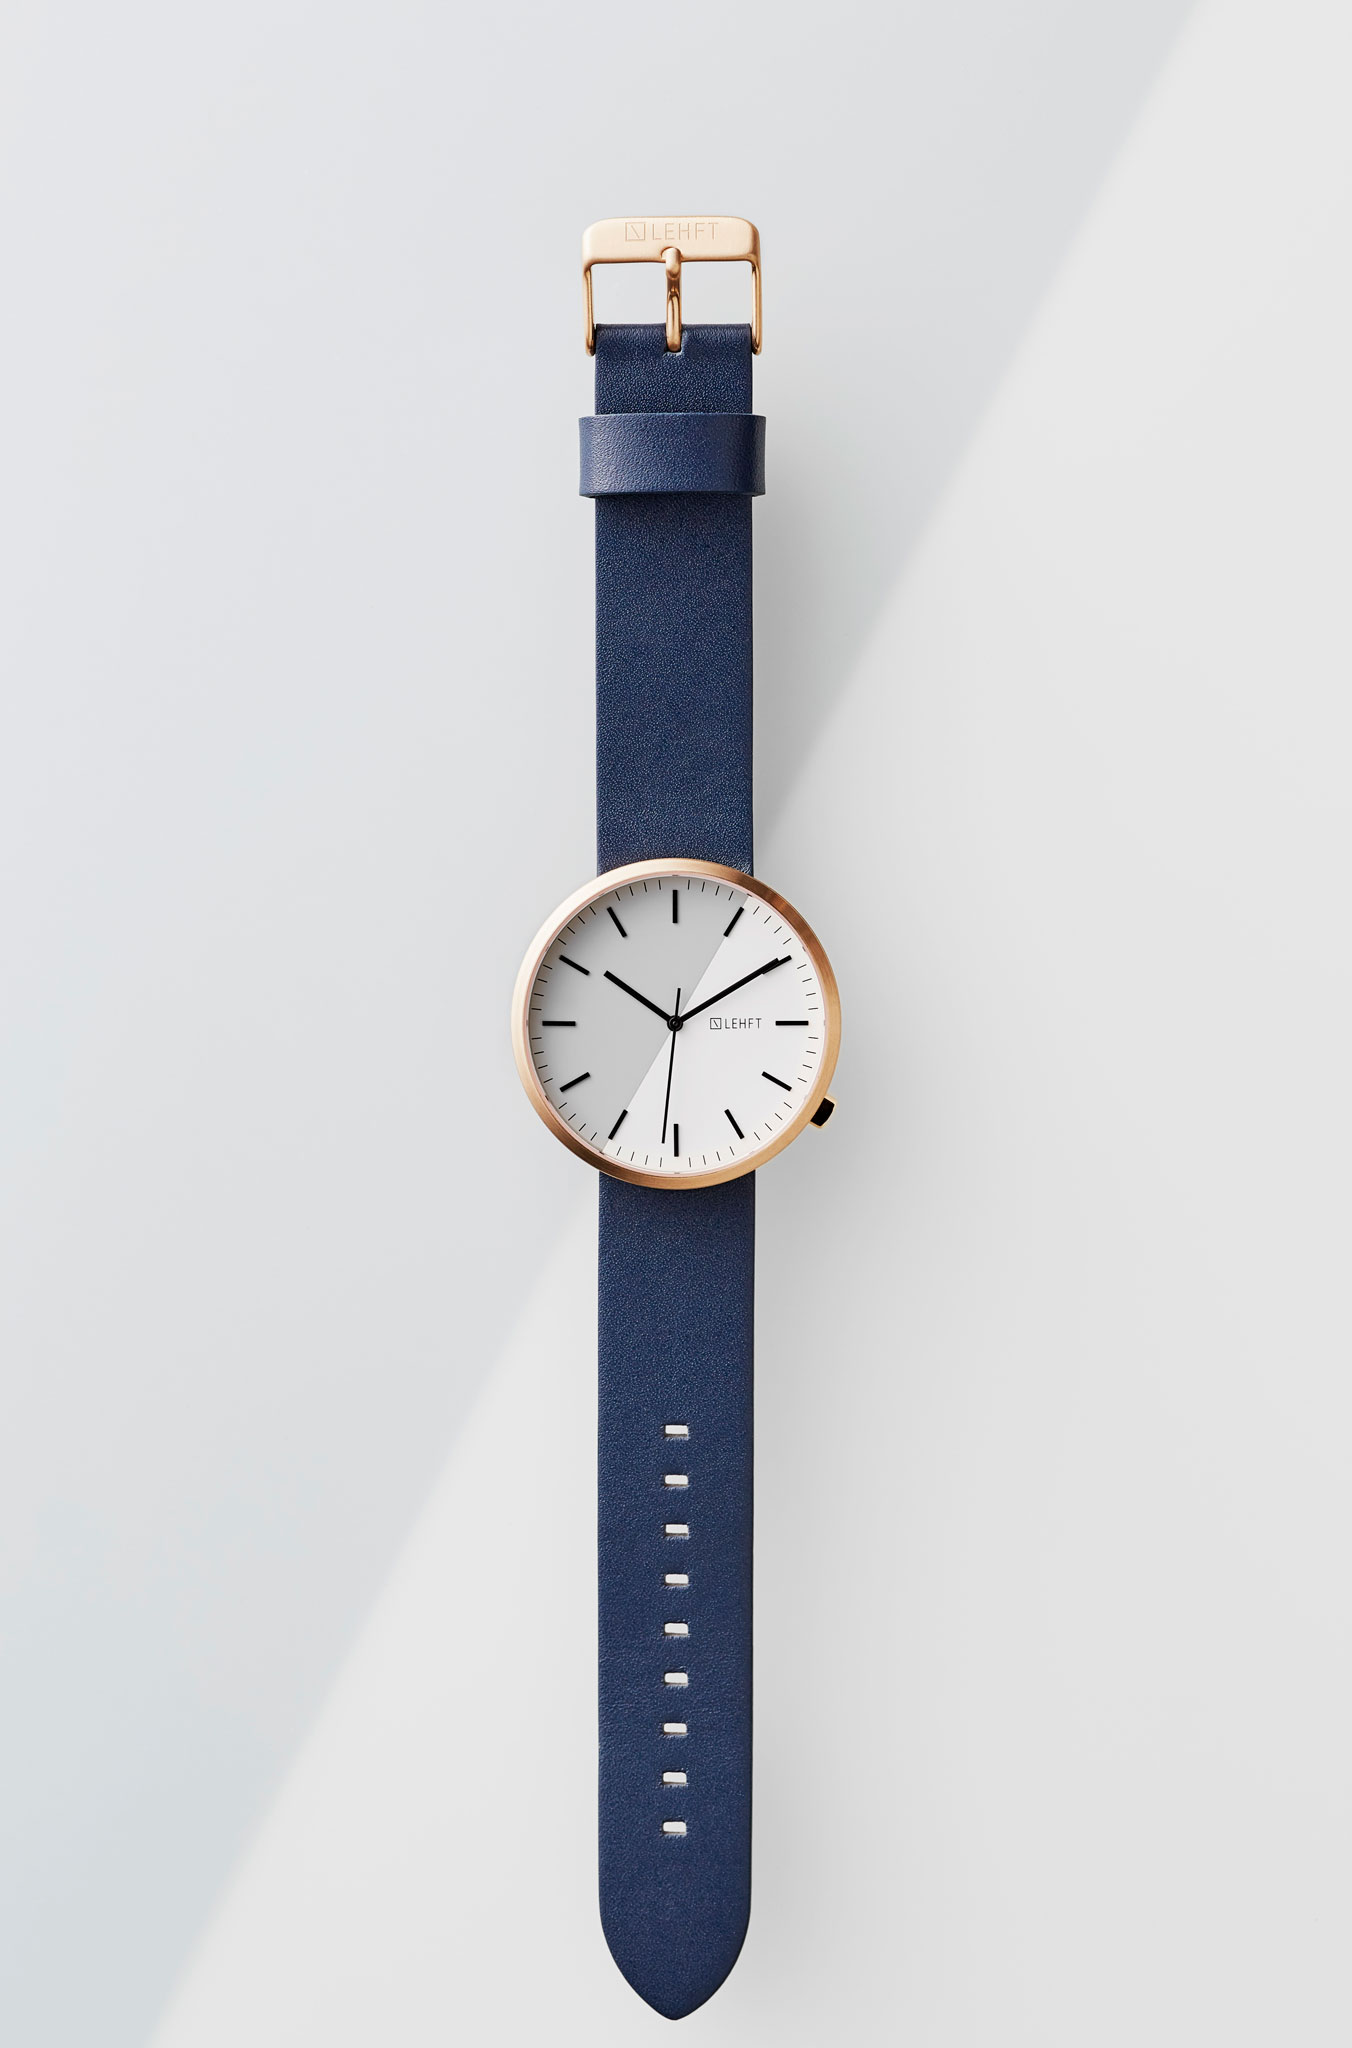 of watches classically at bloomingdale s news designed martian its now wire home smartwatches collection exclusively business mens en debuts newest